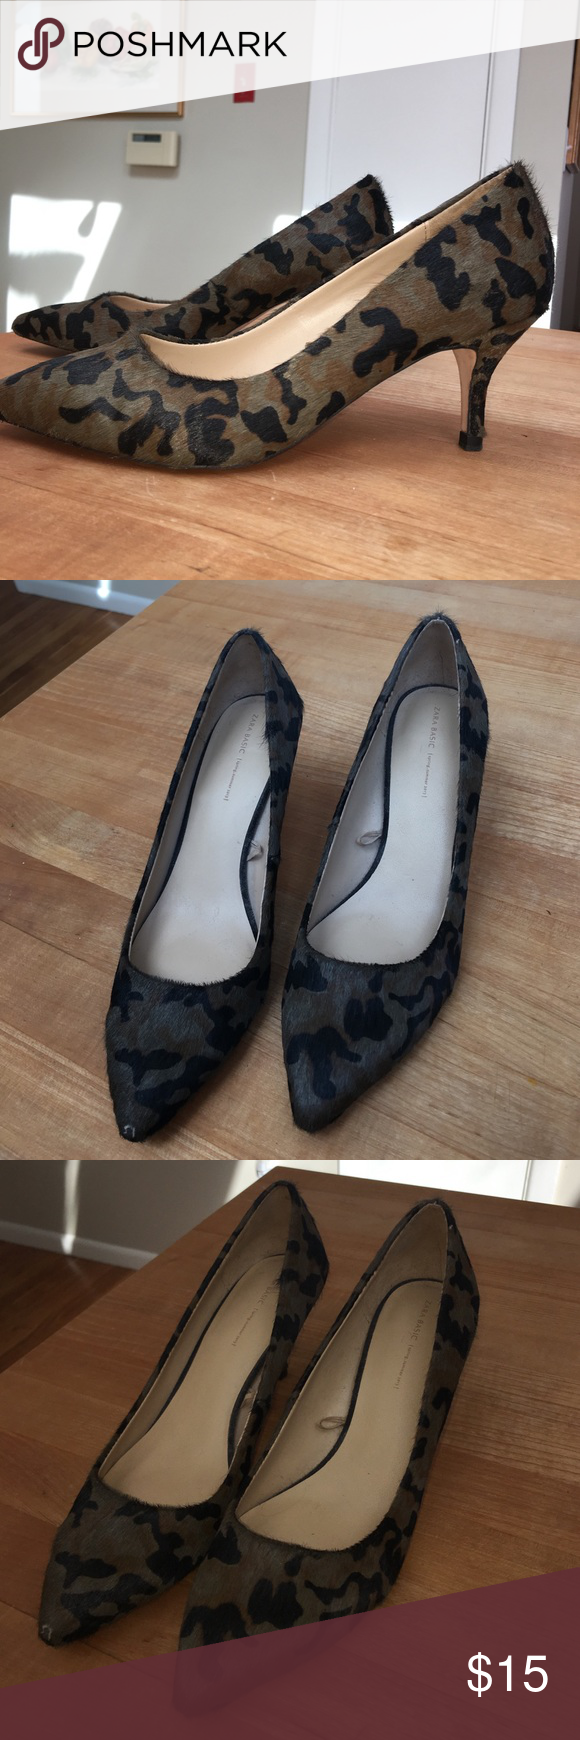 Zara Camo kitten heels Zara Camo heels in a faux animal hair. From the spring/summer 2013 collection. Slight wearing on the toe of the right foot as pictured, but barely noticeable (price will reflect). Kitten heel measures 3 inches. Size 38. Zara Shoes Heels